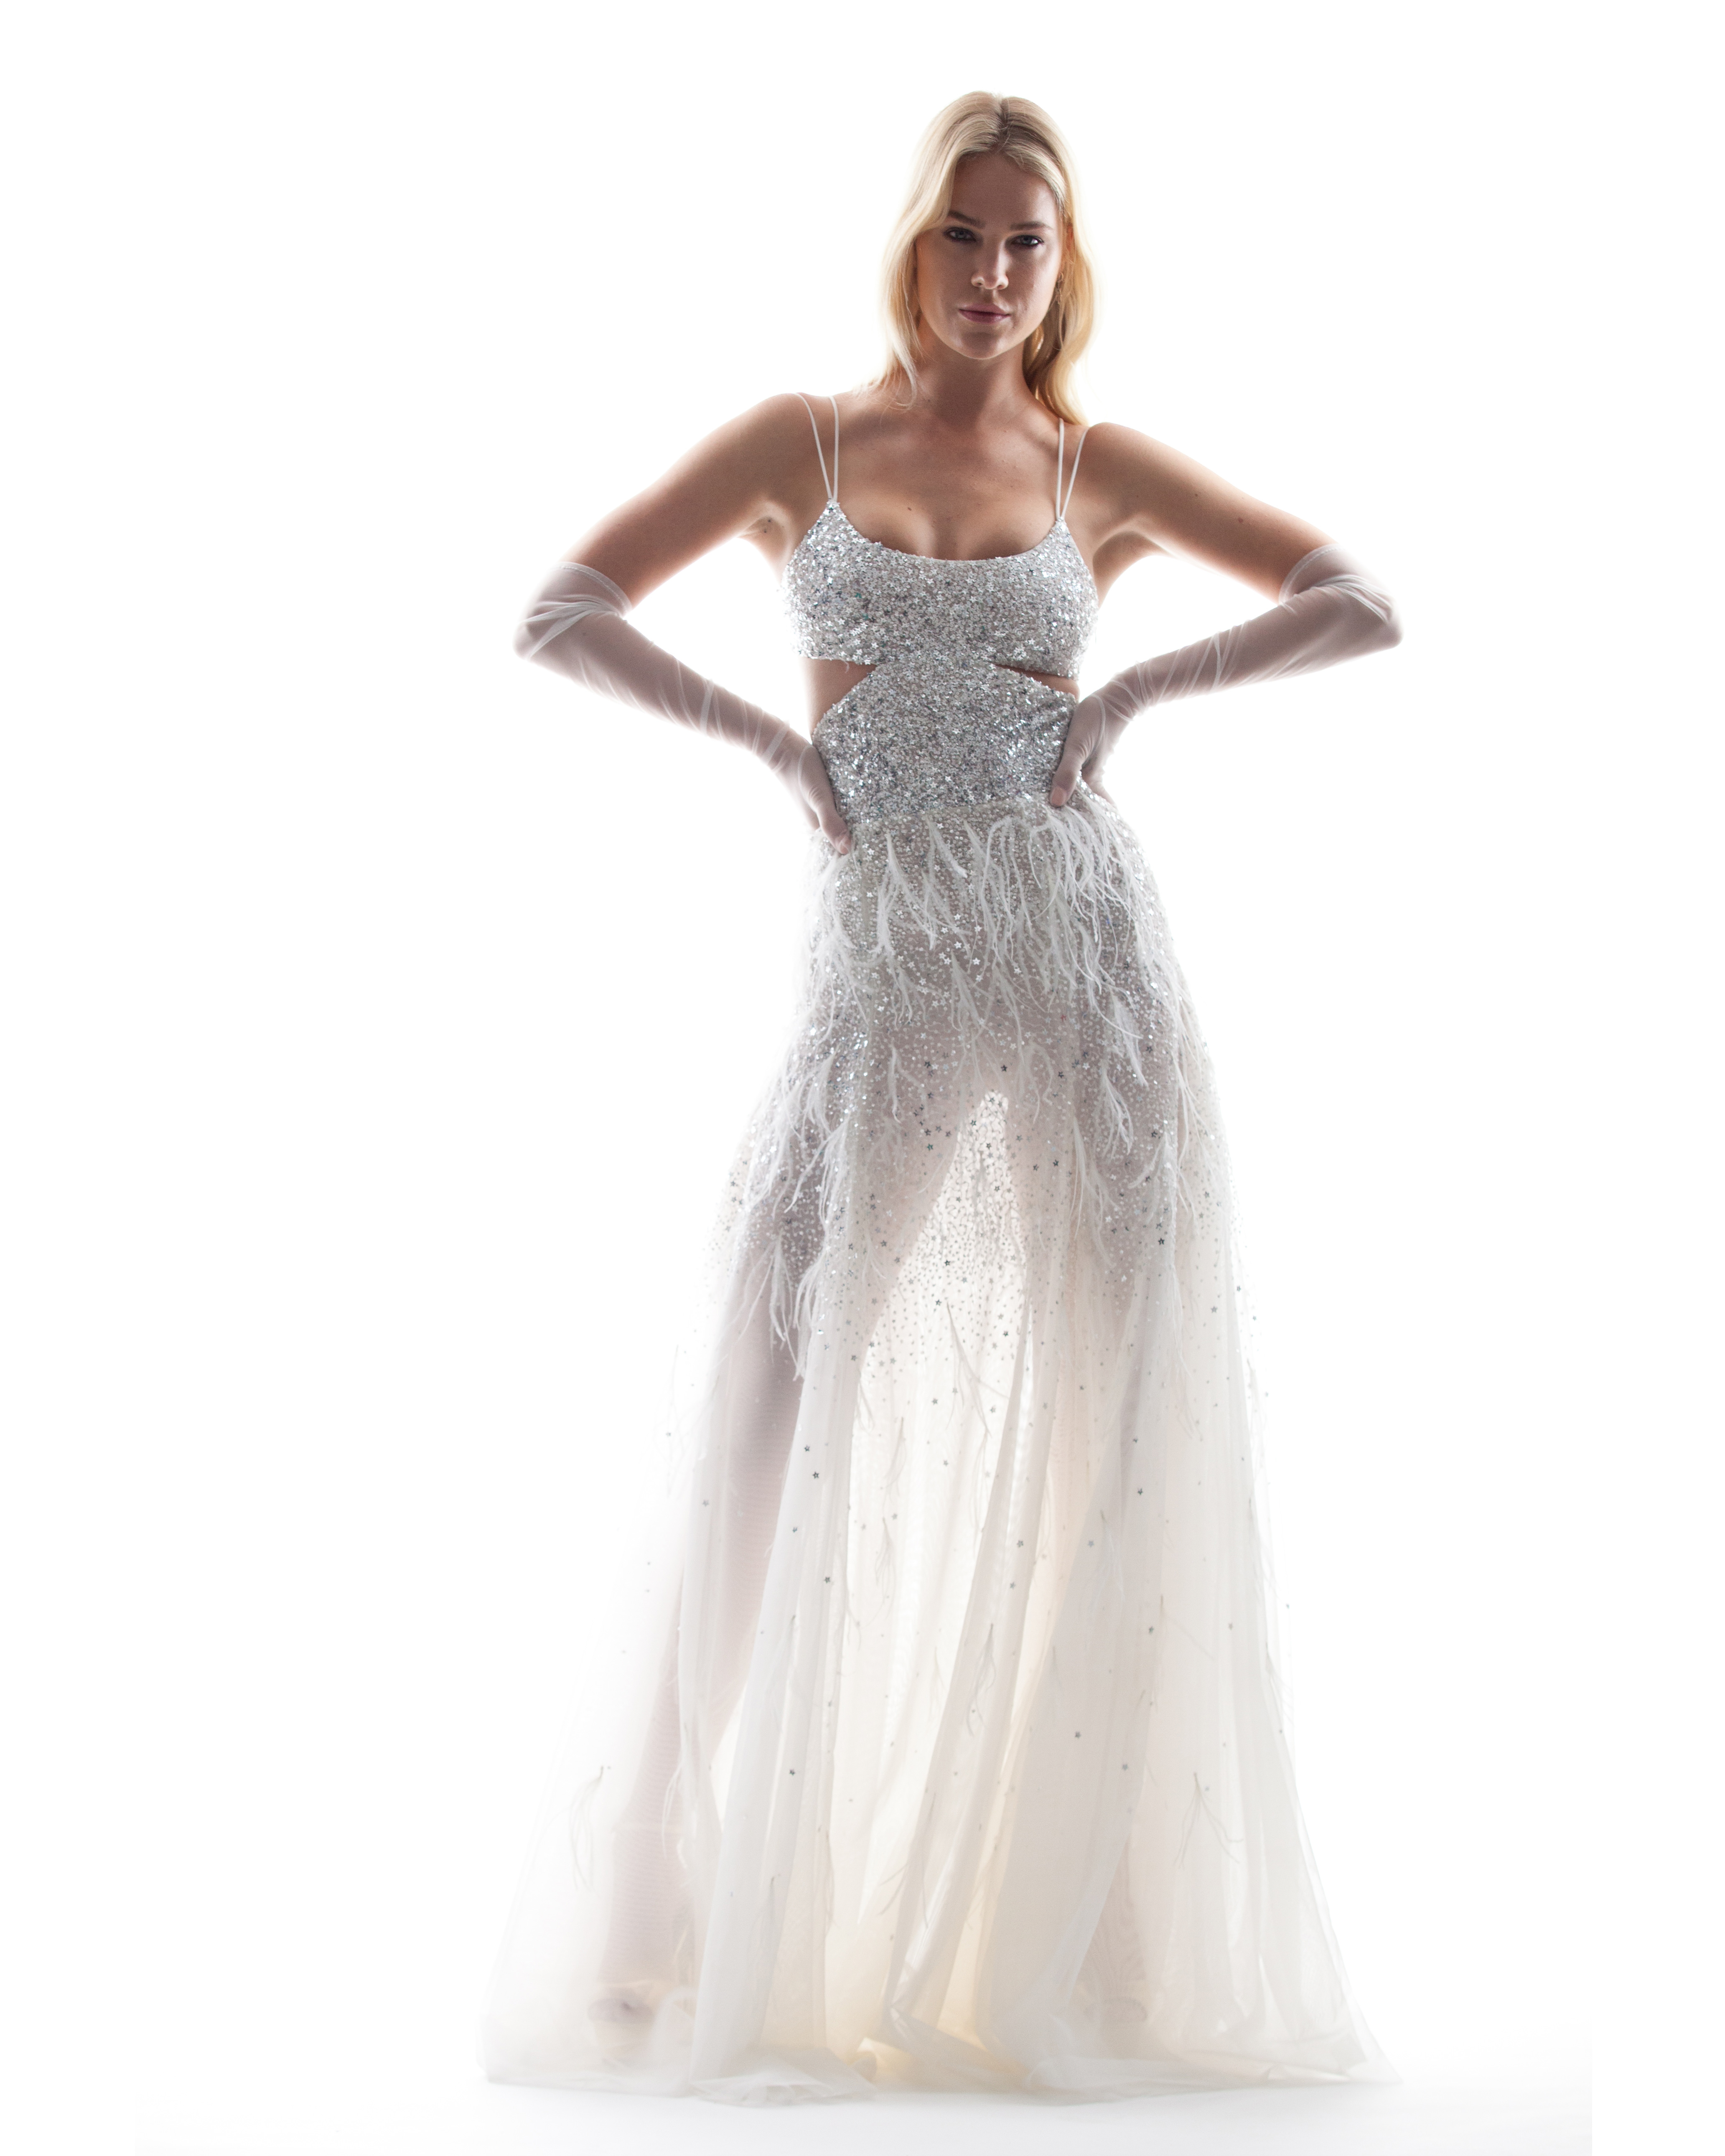 sparkly houghton wedding dress spring 2018 with spaghetti straps